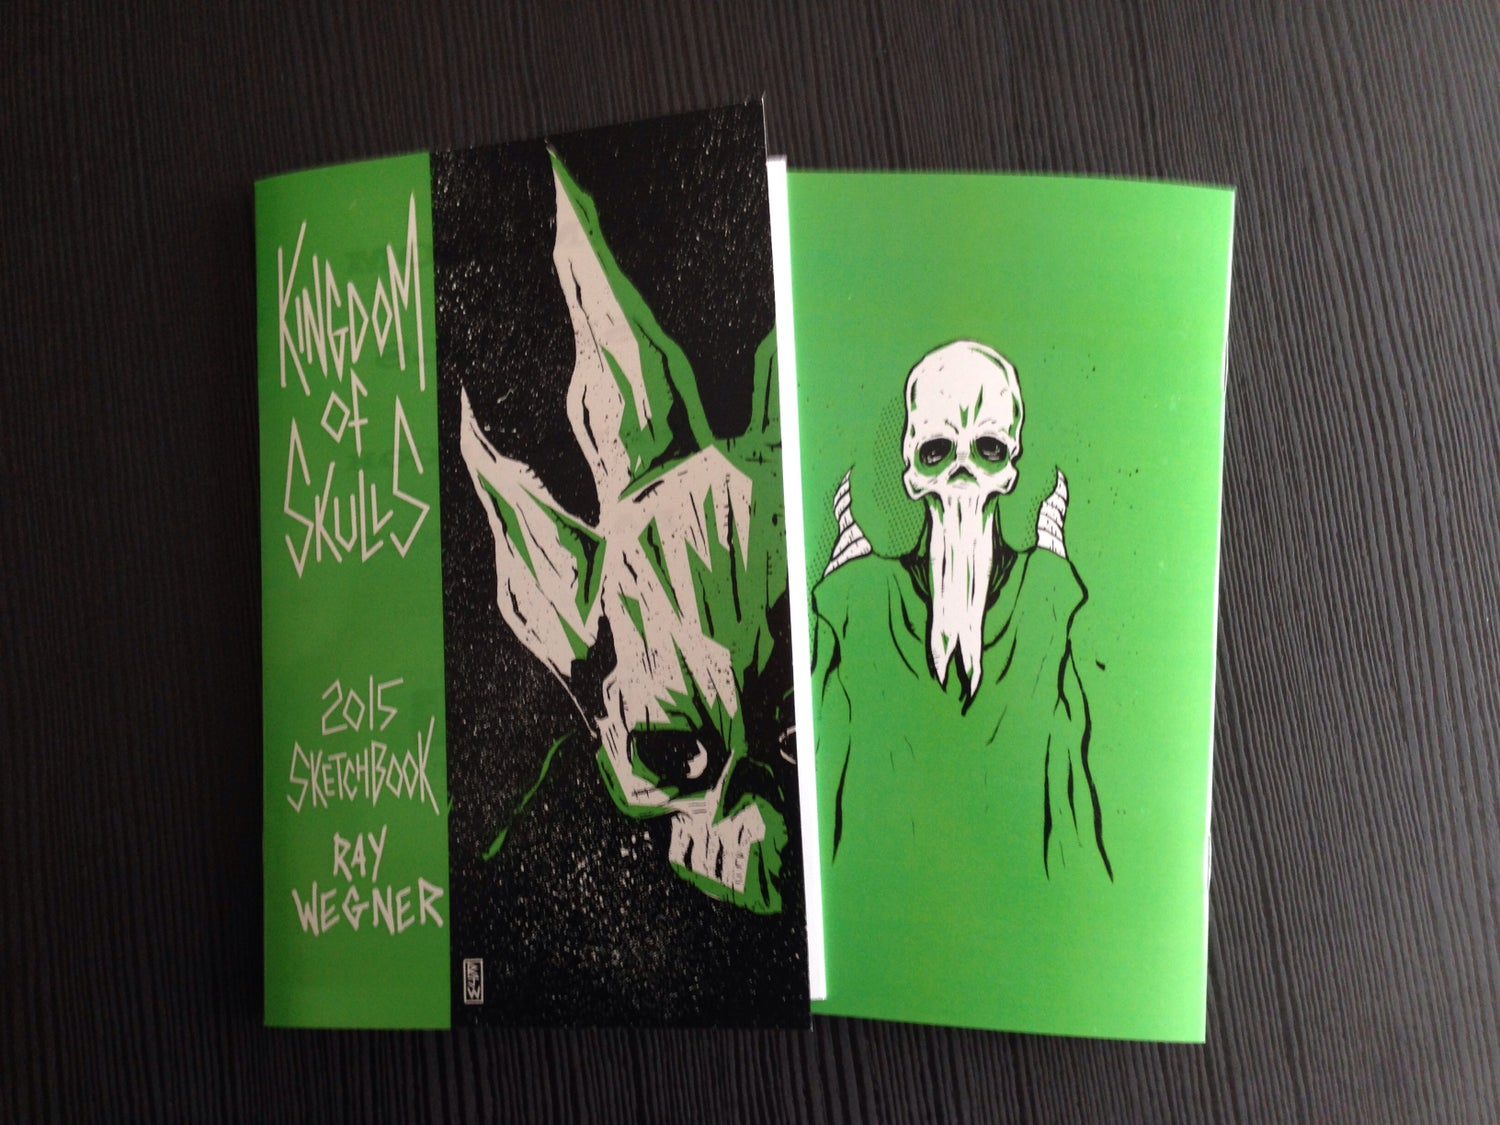 Image of Kingdom of Skulls 2015 Sketchbook